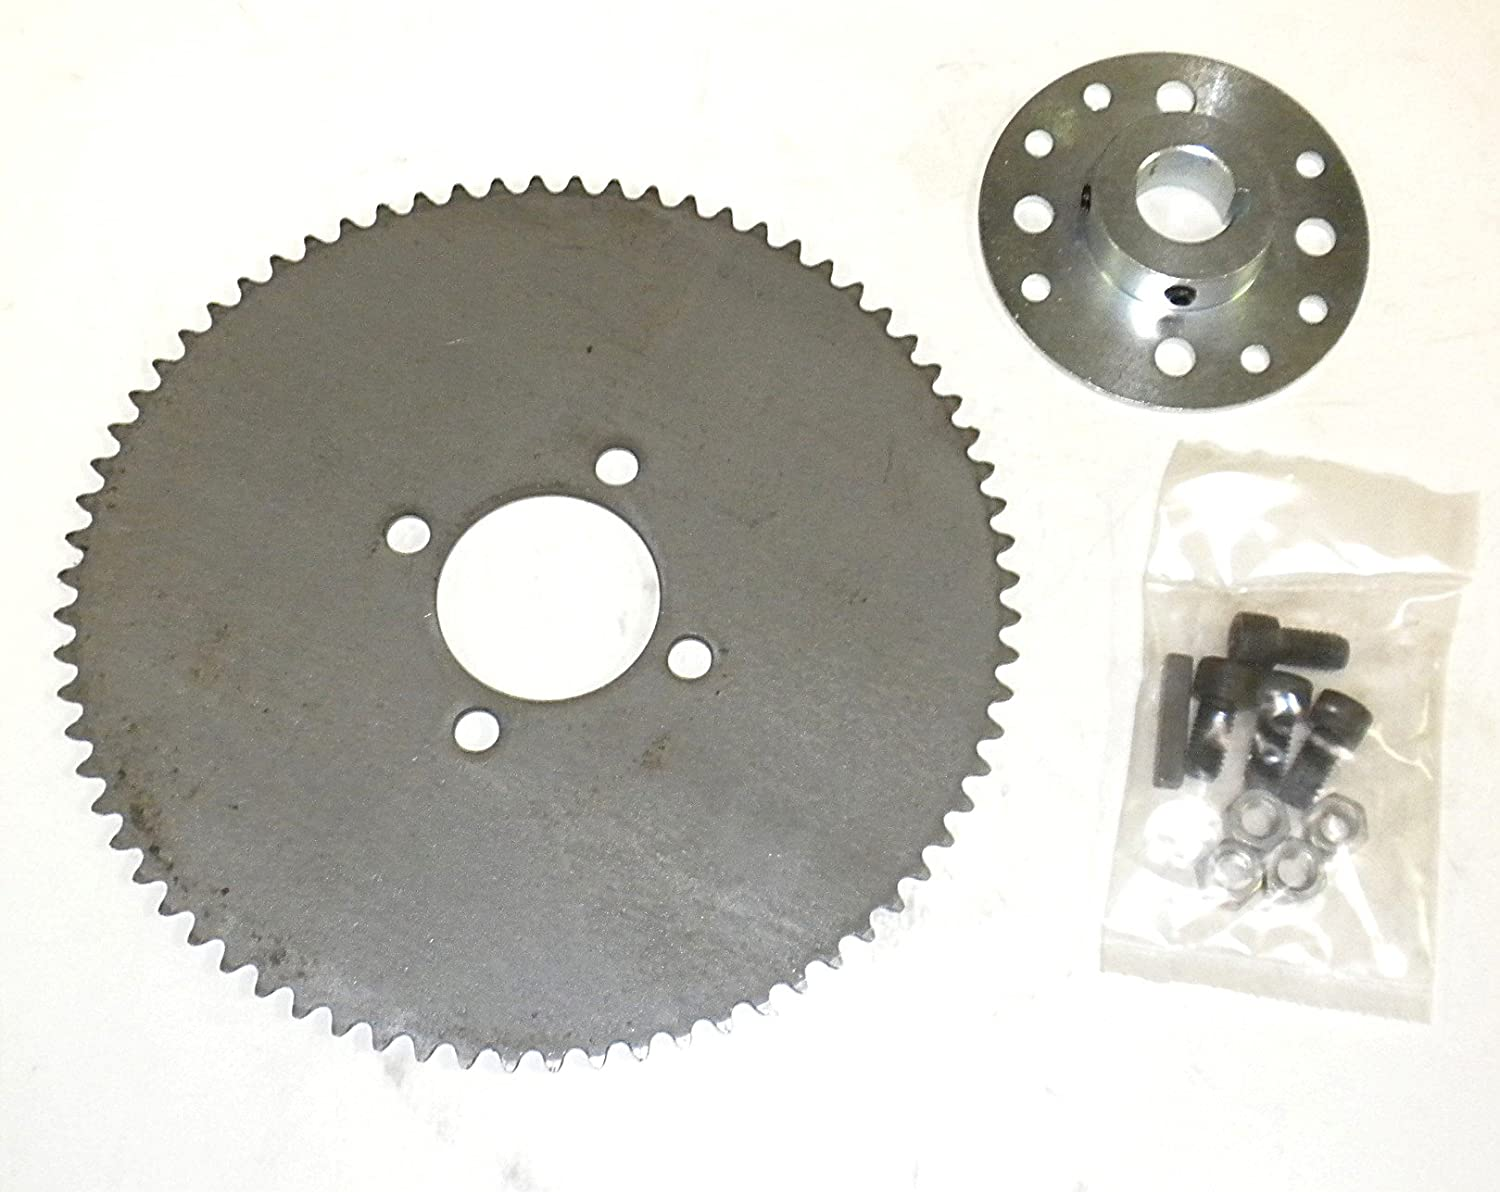 Go Kart Sprocket & Hub For 1' Axle 72T for #35 Chain Rotary